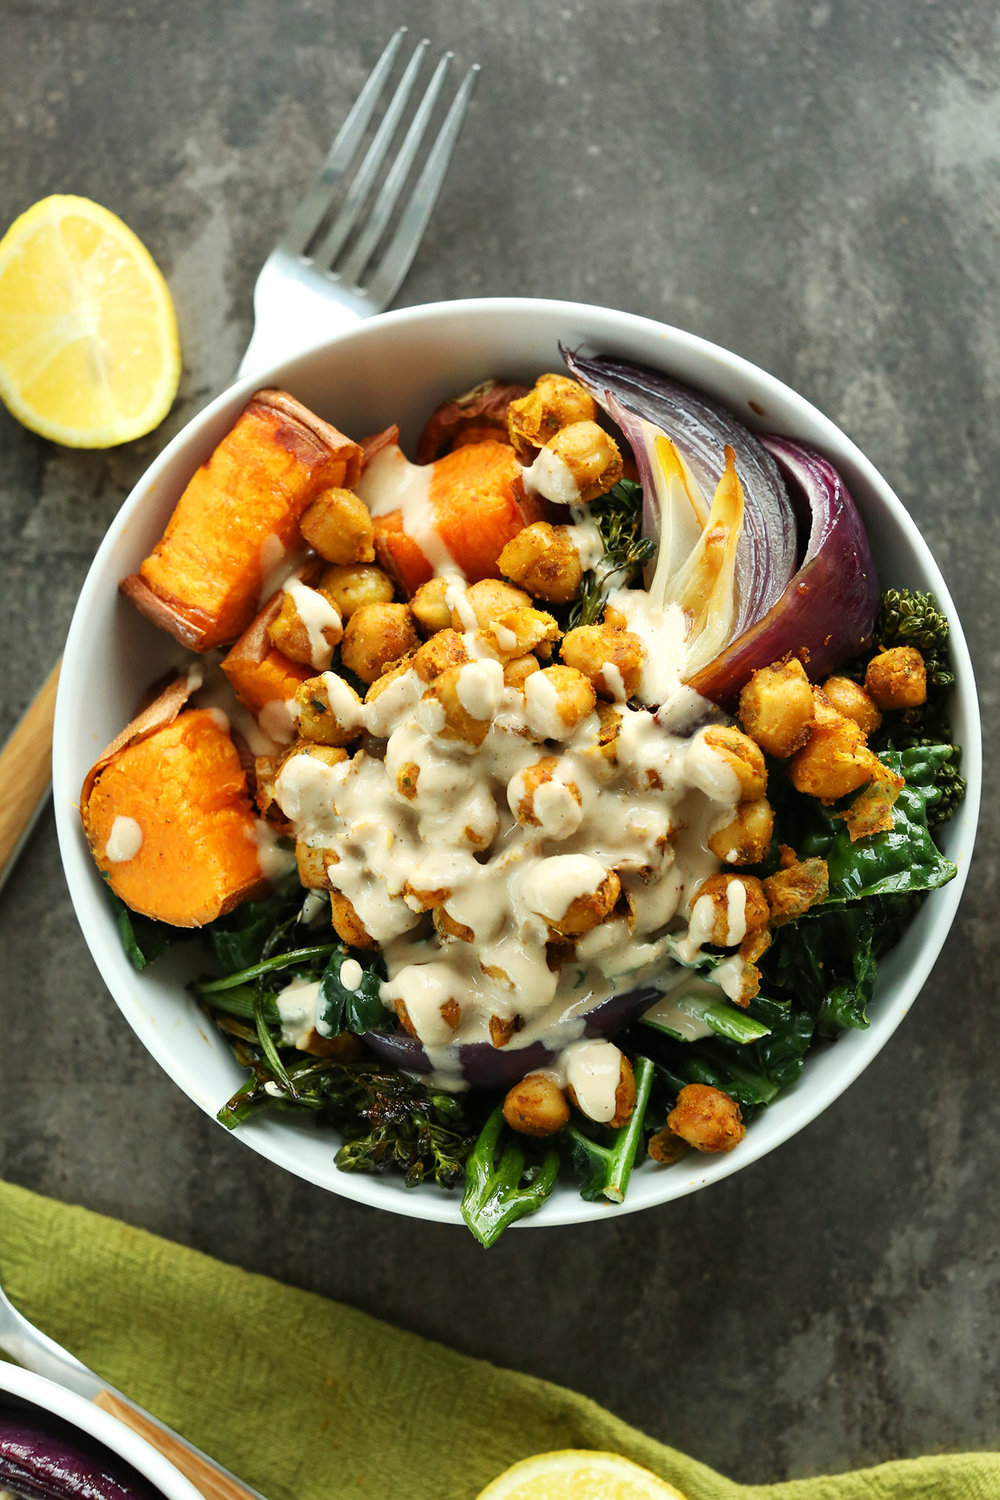 30-minute-CHICKPEA-Sweet-Potato-BUDDHA-Bowls-A-complete-meal-packed-with-protein-fiber-and-healthy-fats-with-a-STELLAR-Tahini-Lemon-Maple-Sauce-vegan-glutenfree-healthy.jpg